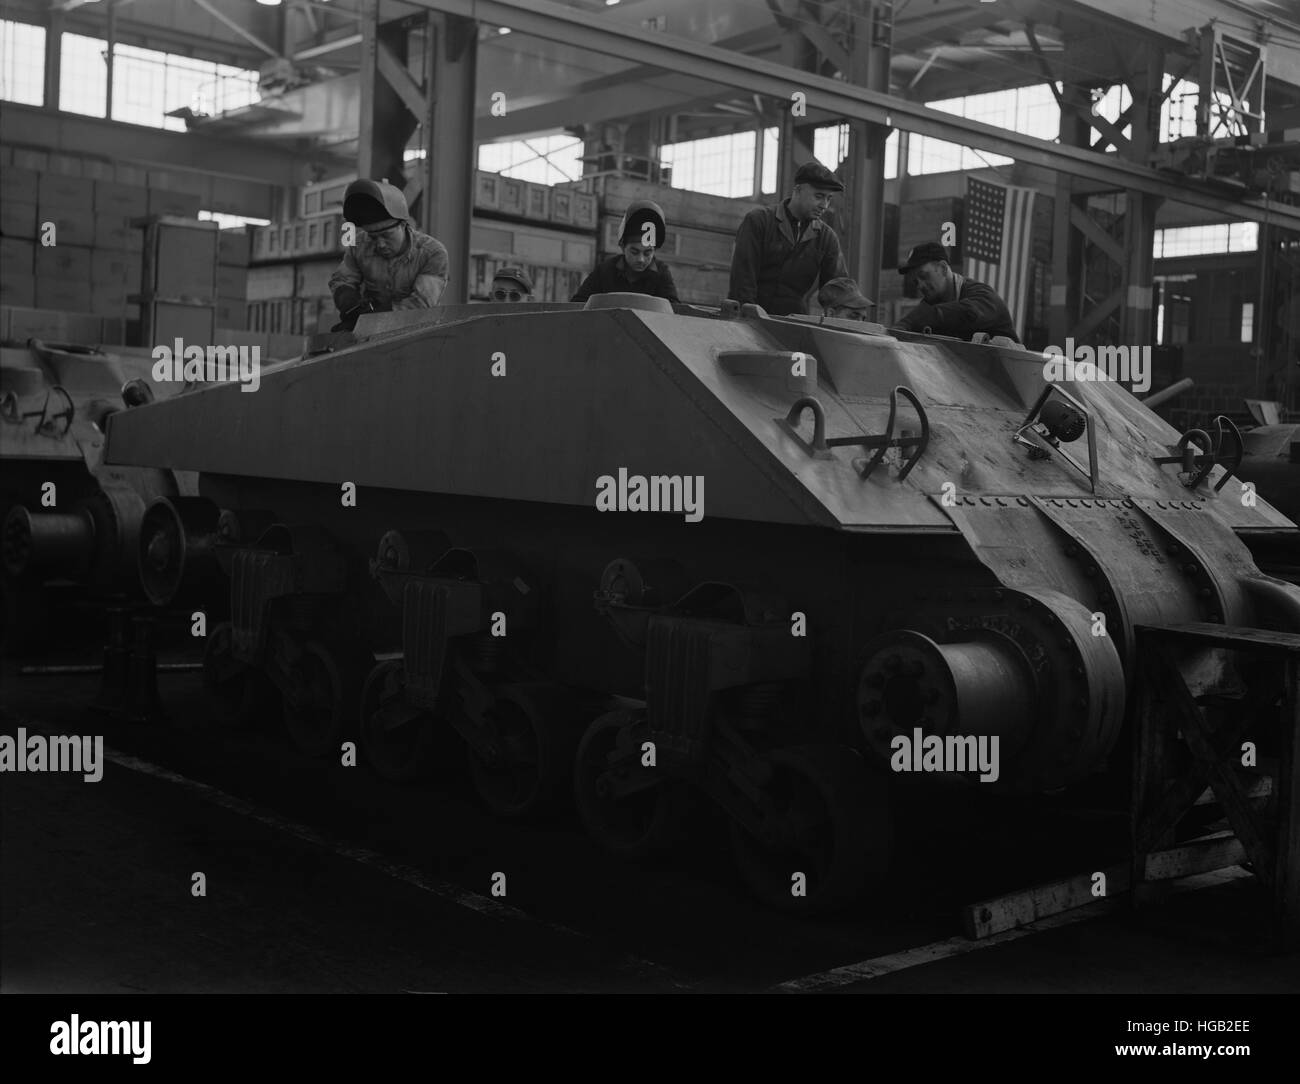 Arc welders work on the partly-completed hull of a new M4 tank, 1943. - Stock Image